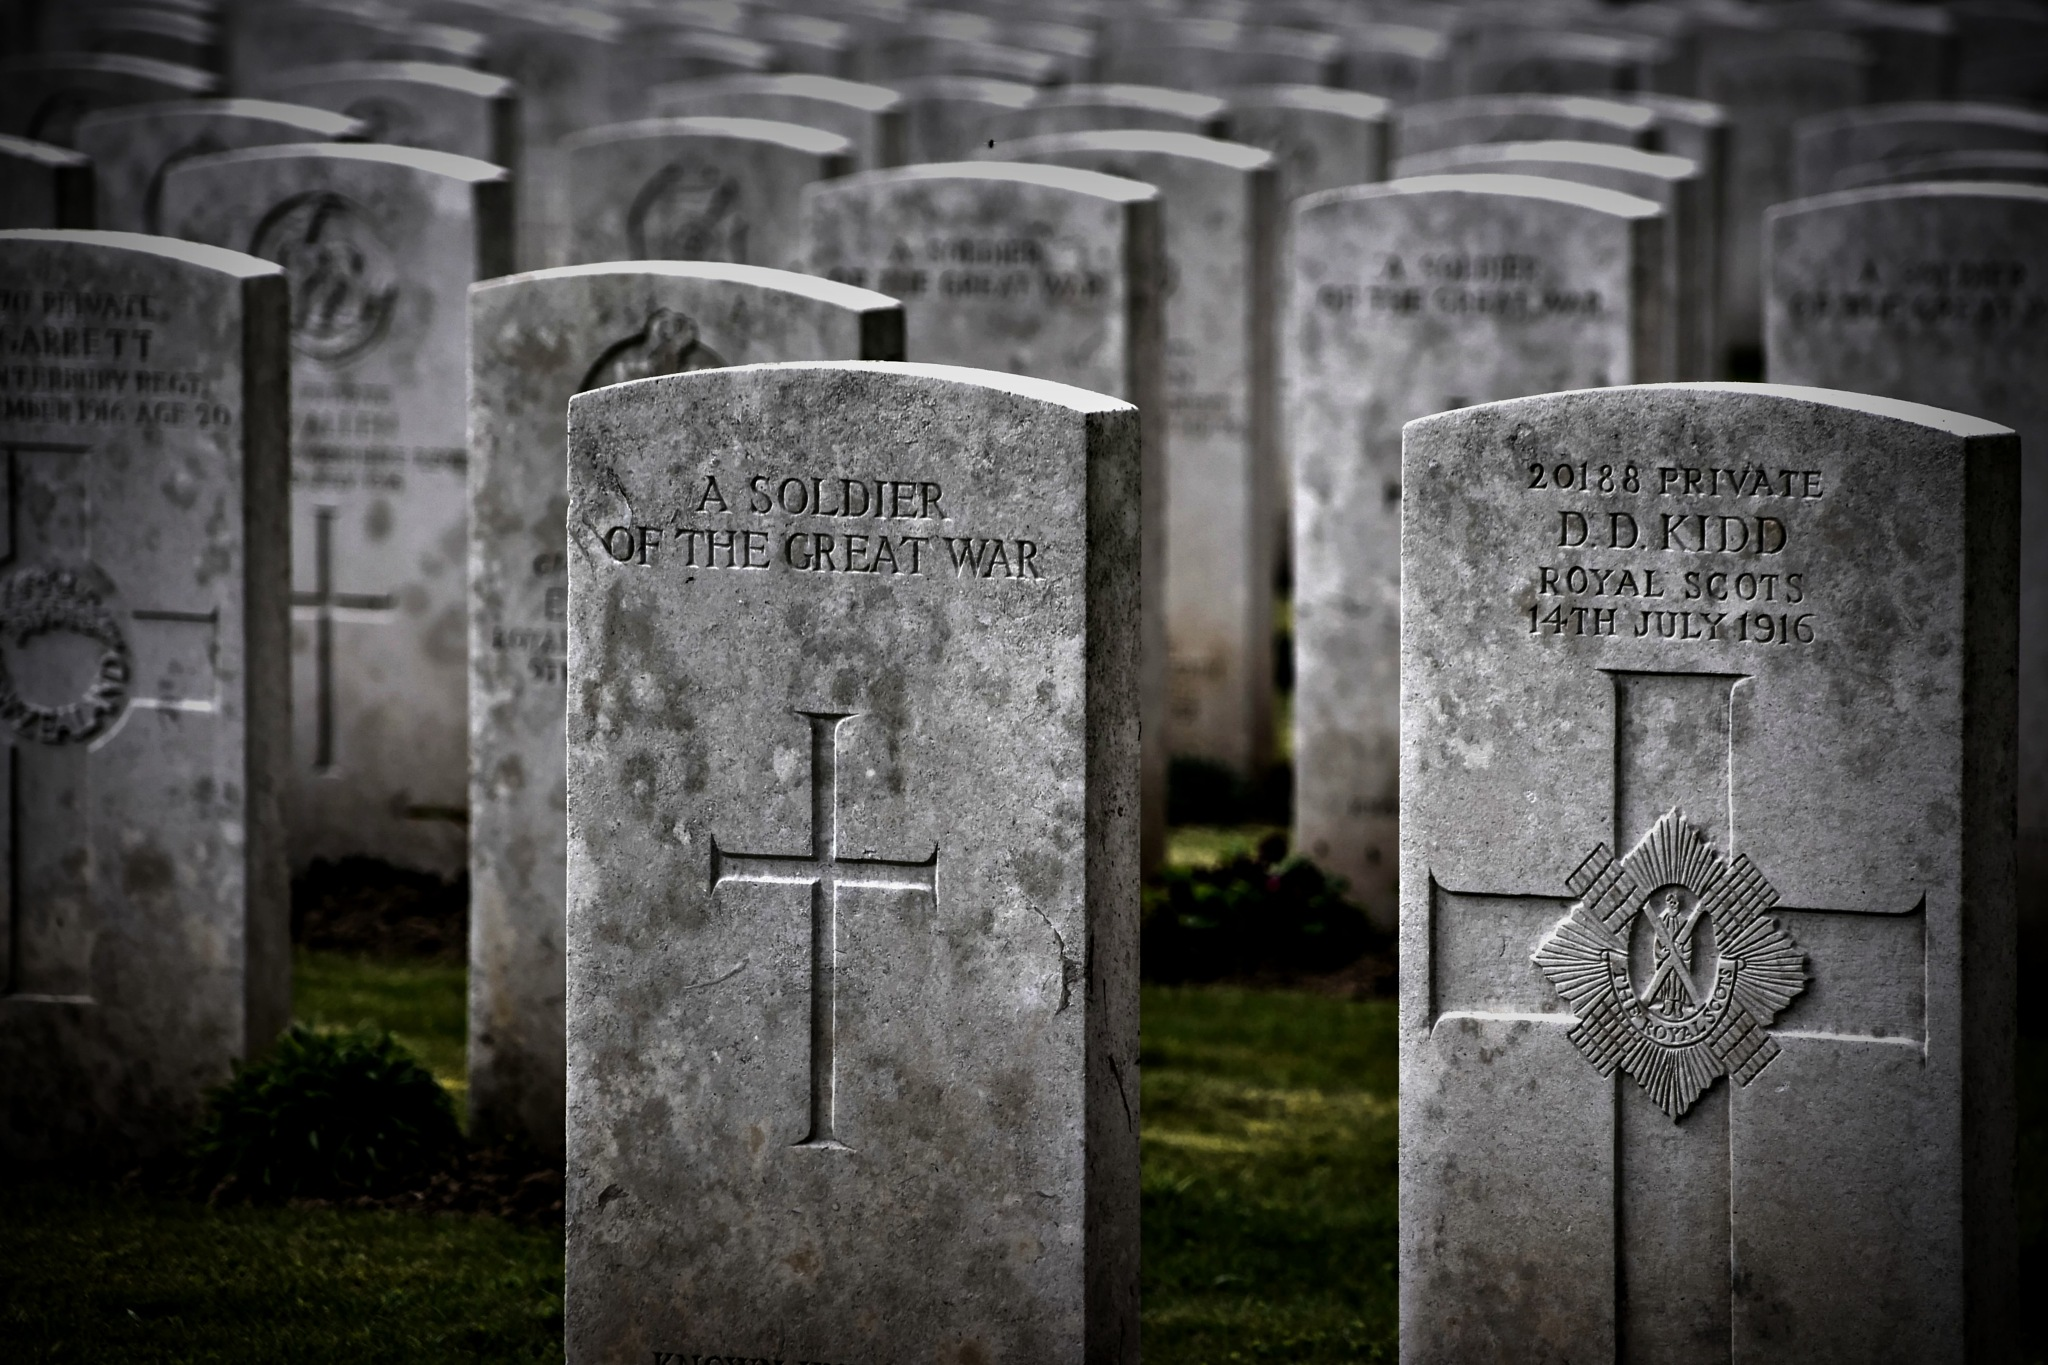 Caterpillar valley military cemetery by Steve Thomas